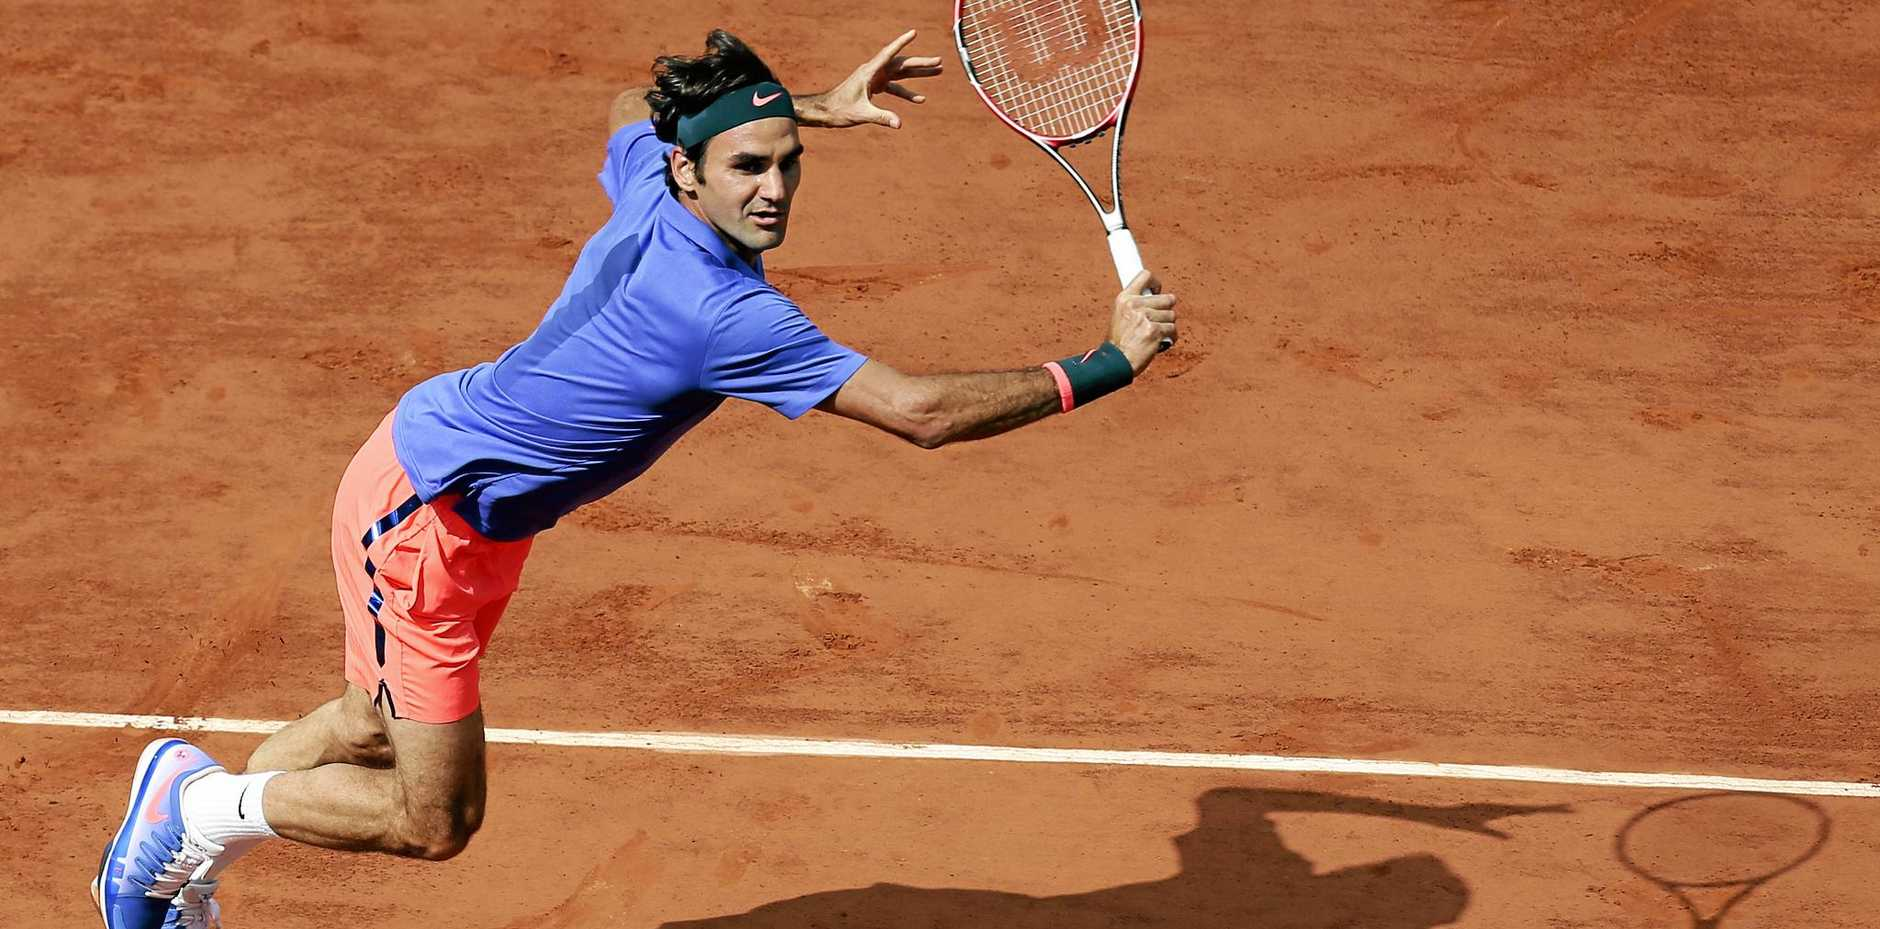 Roger Federer in action during the 2015 French Open in Paris.